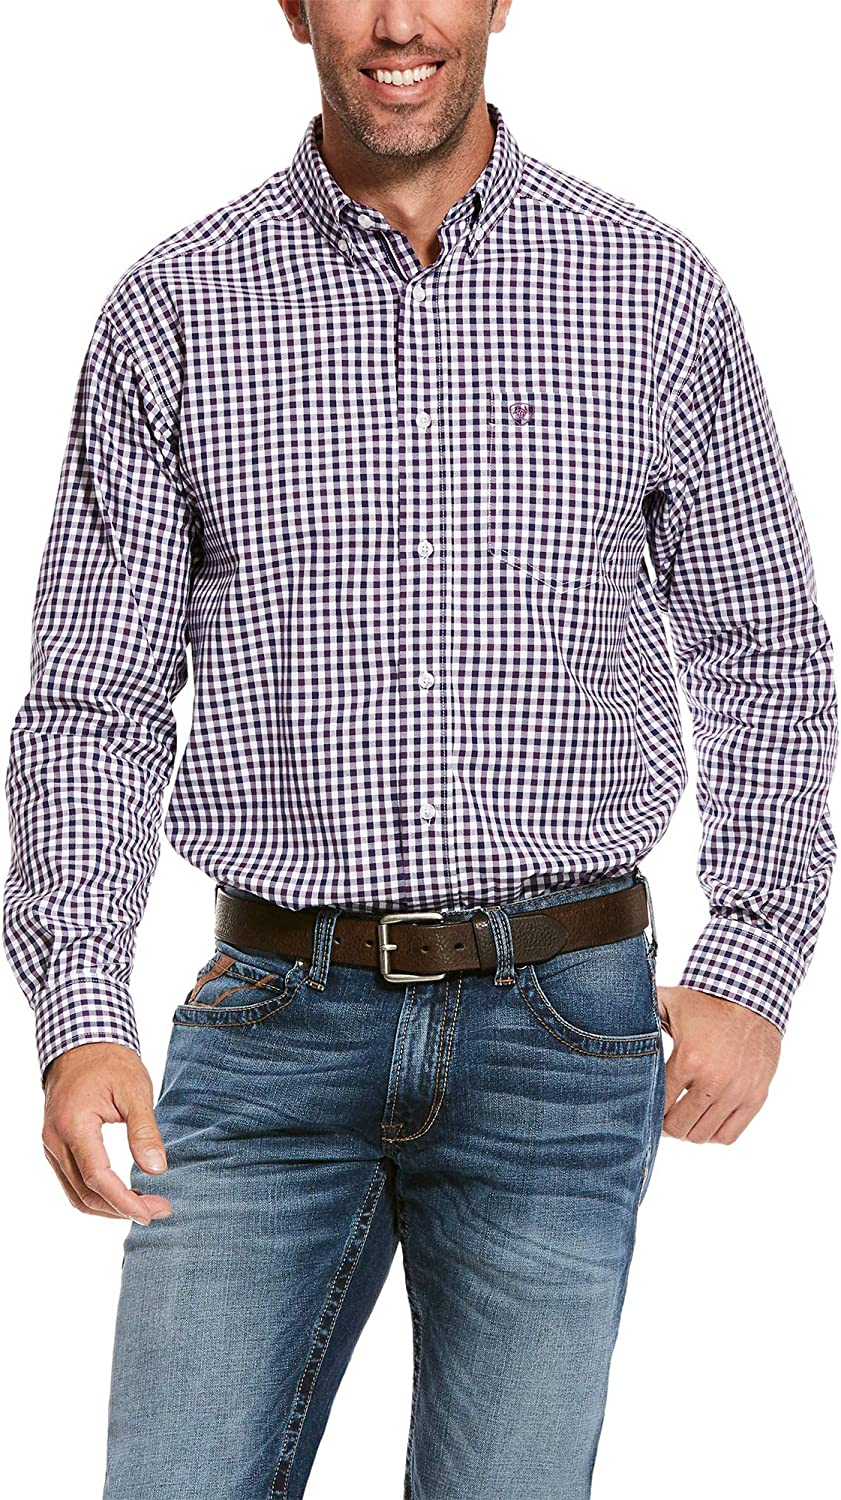 ARIAT Men's Pro Series Fit Max 79% New product! New type OFF Classic Shirt Shane